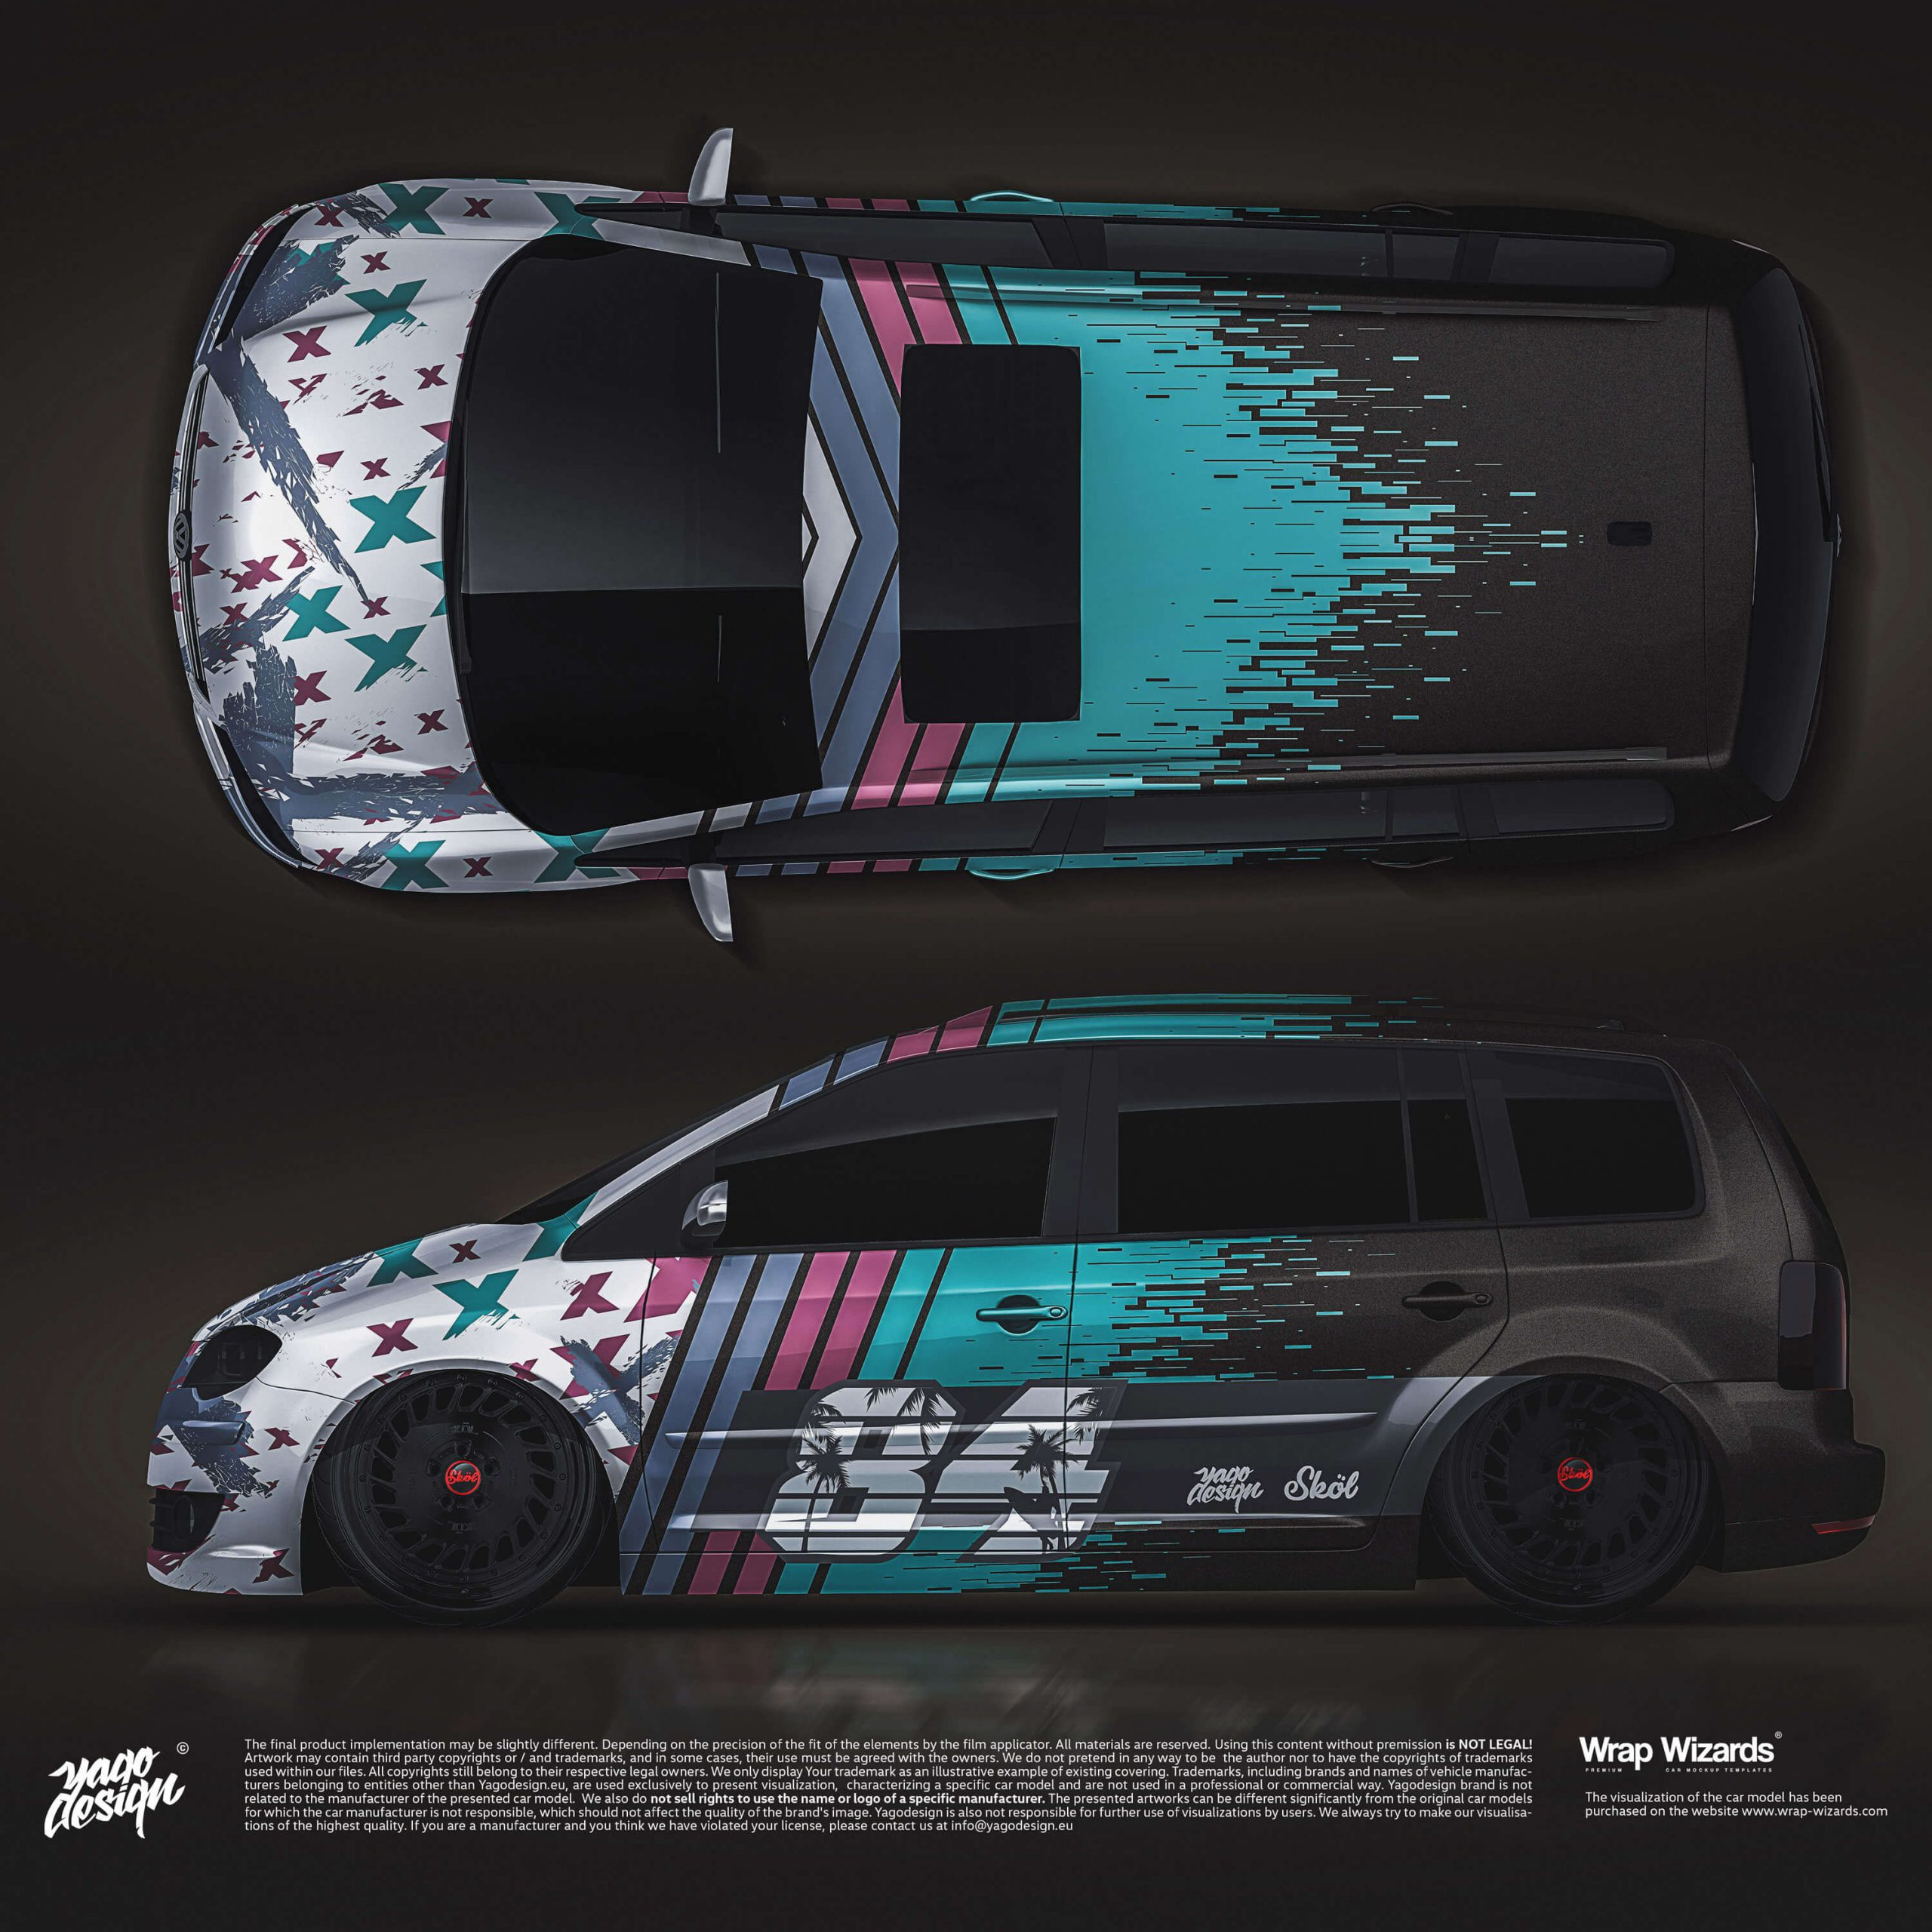 VW-Touran-2007-by-Yagodesign-2020-Car-Wrapping-3